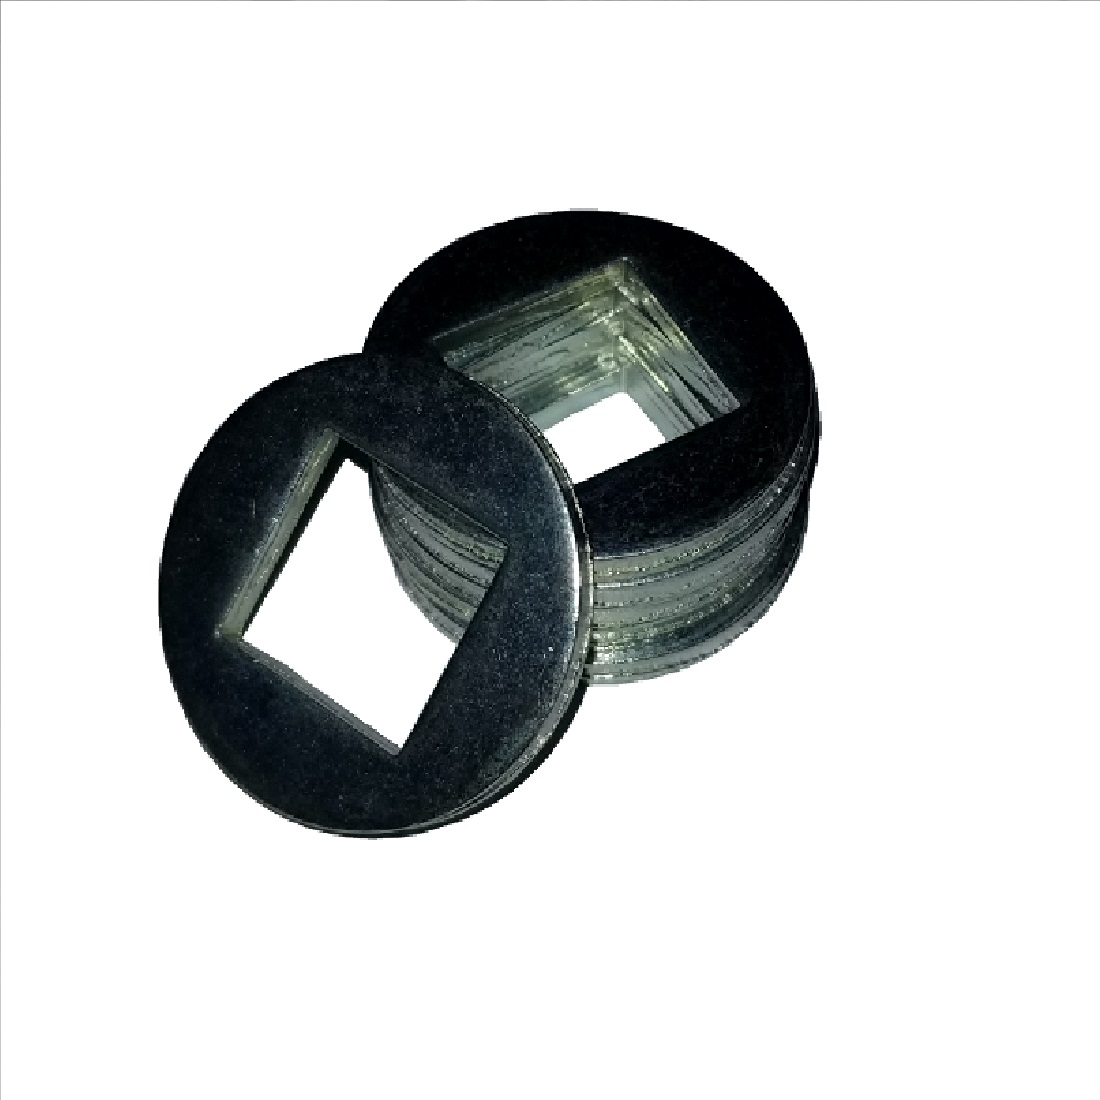 Square ID Washer - 0.656 ID, 1.375 OD, 0.109 Thick, Low Carbon Steel - Soft, Zinc & Yellow